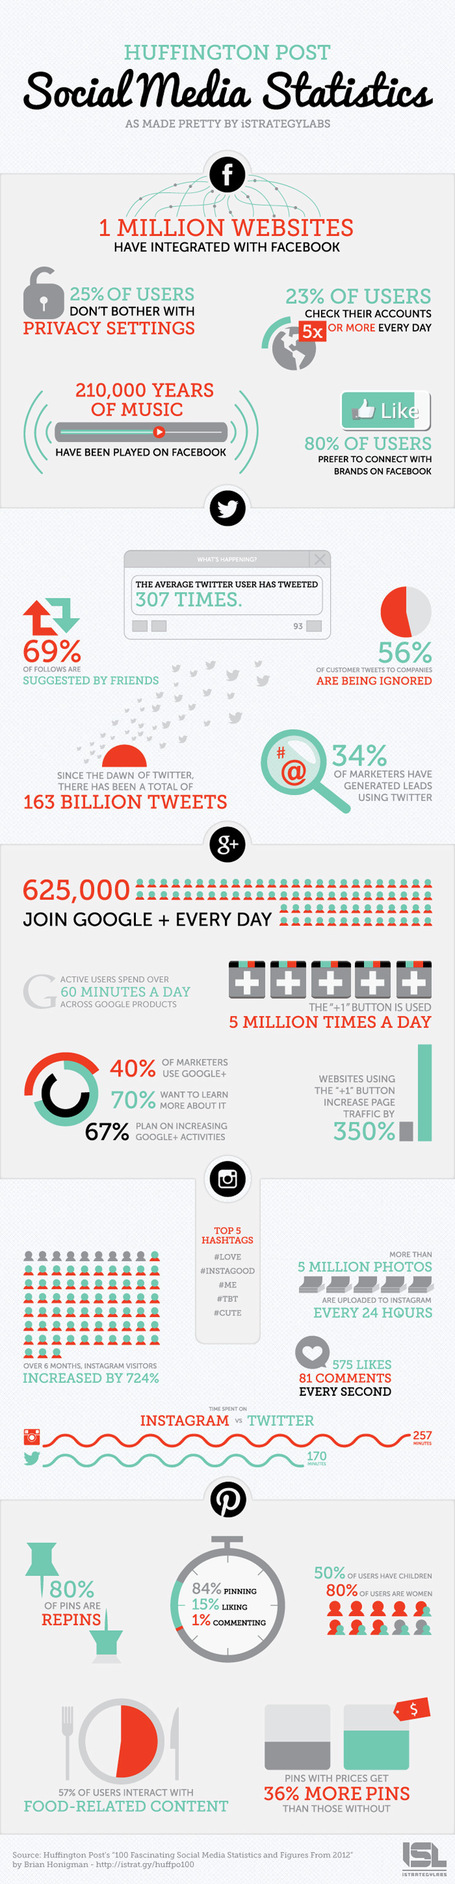 The Amazing Social Media Statistics 2012 – infographic /@BerriePelser | Managing options | Scoop.it